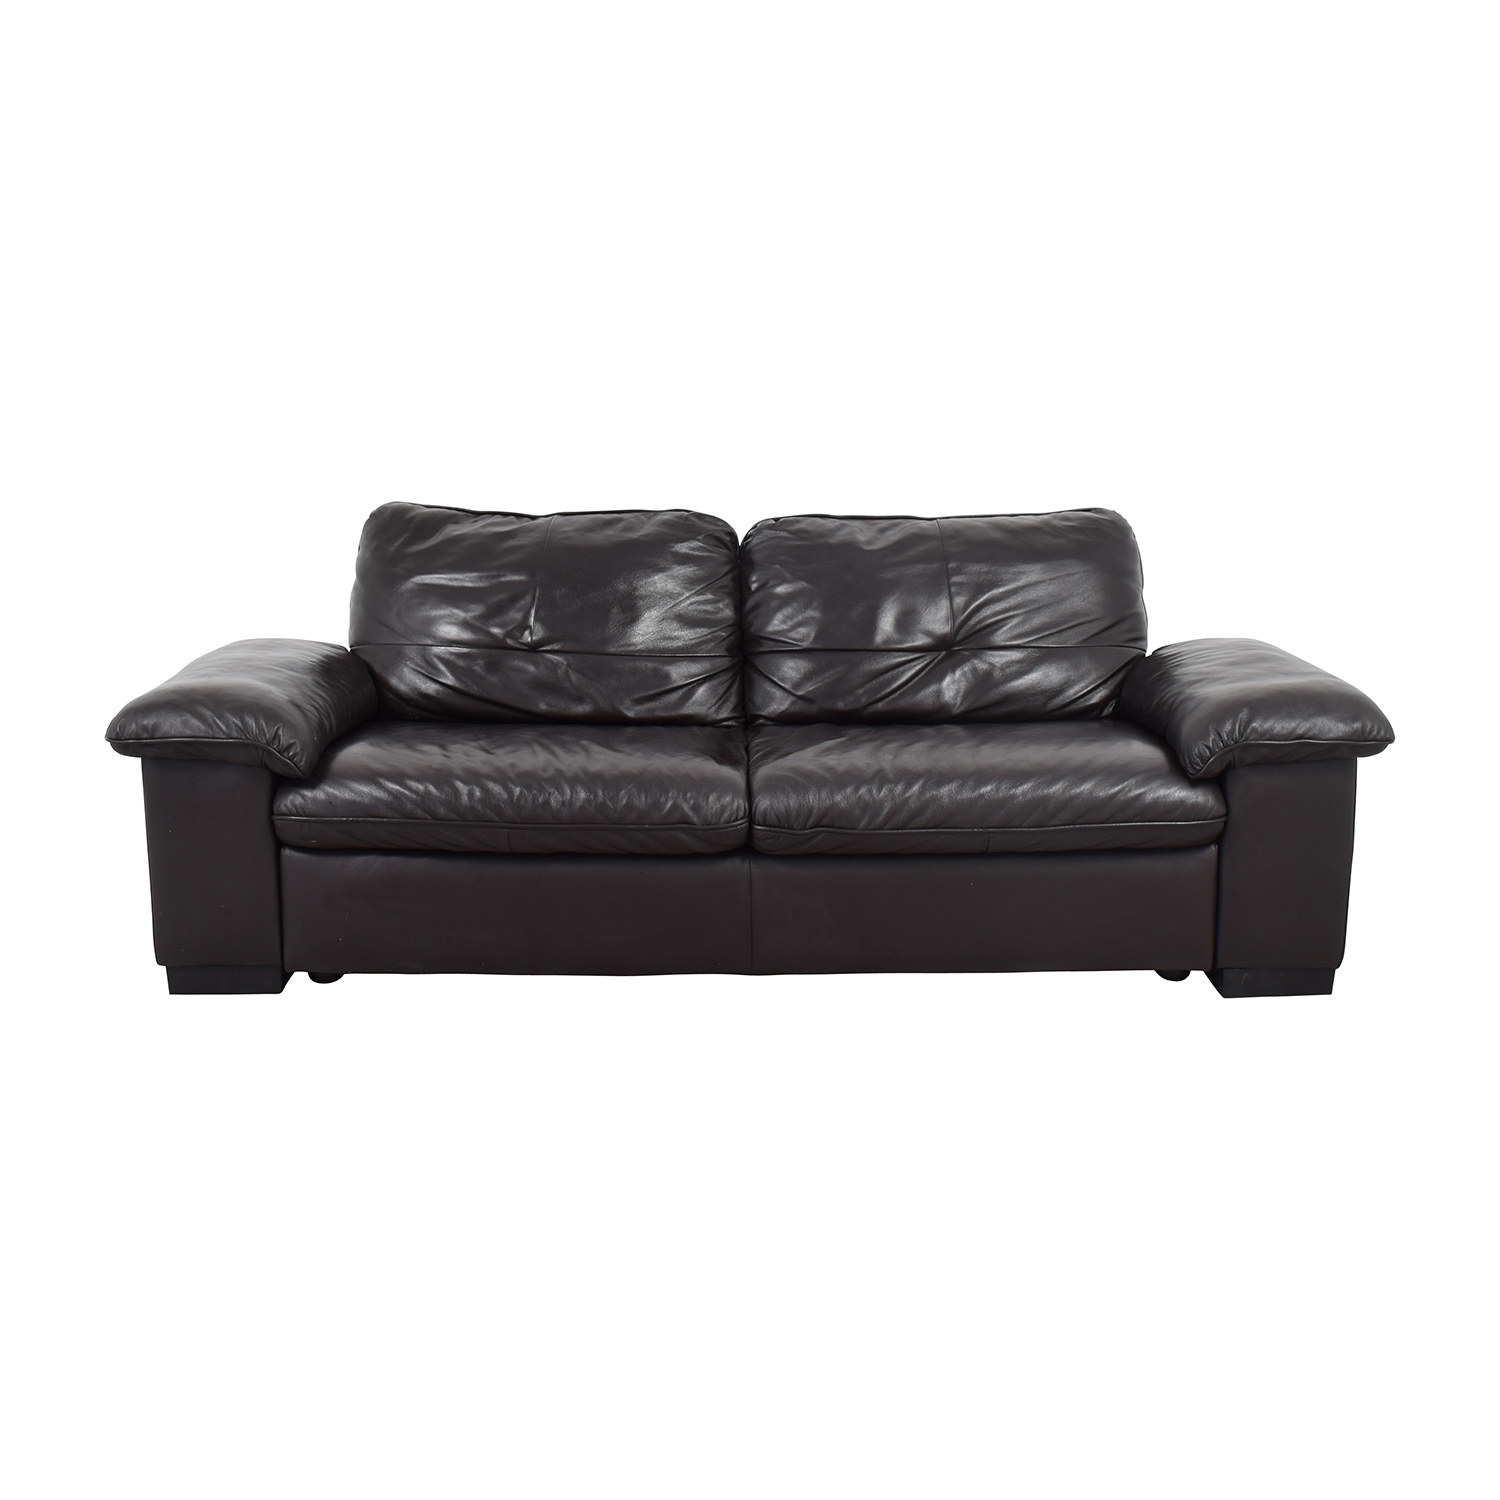 Buy IKEA Black Leather 3 Seat Sofa IKEA ...